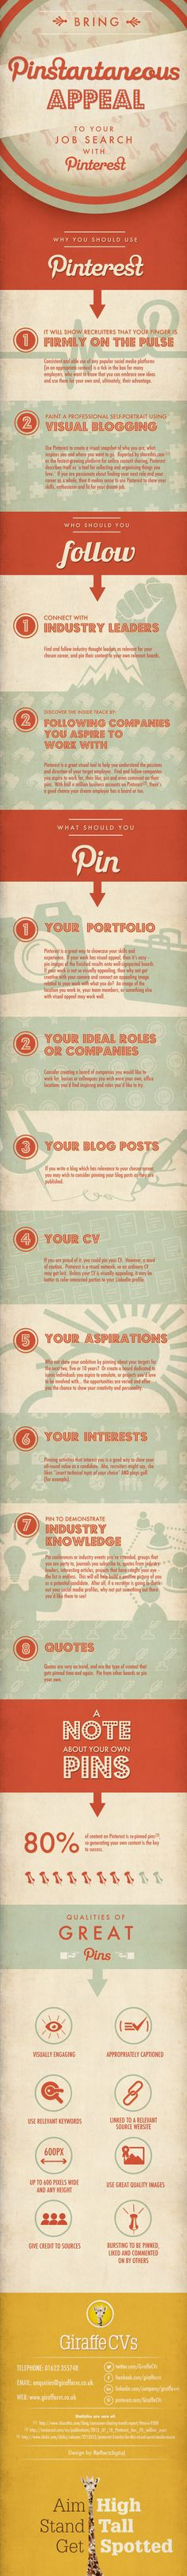 #Pinterest #infographic: Bring Pinstantaneous appeal to your job search with Pinterest by CV writing service Giraffe CVs.  #jobs